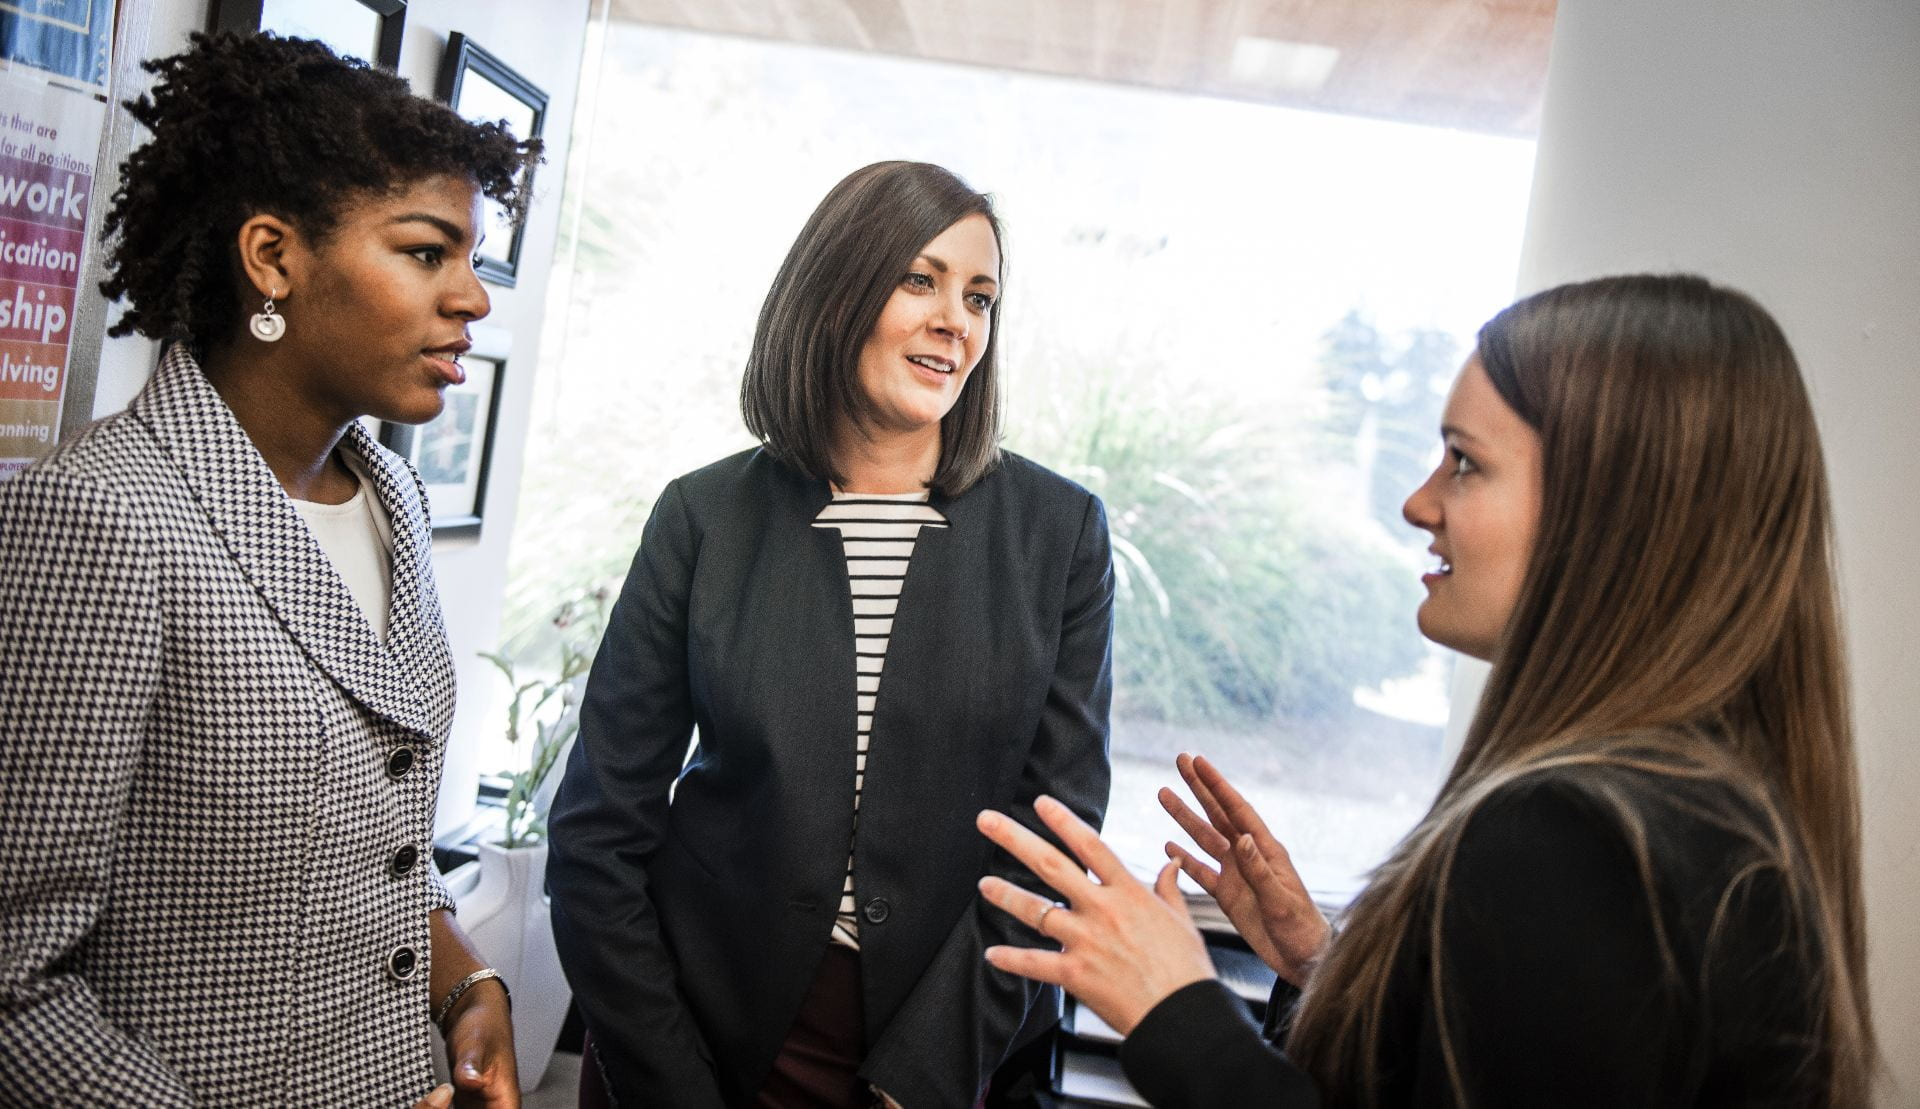 Three women, including a company, recruiter have a conversation while standing